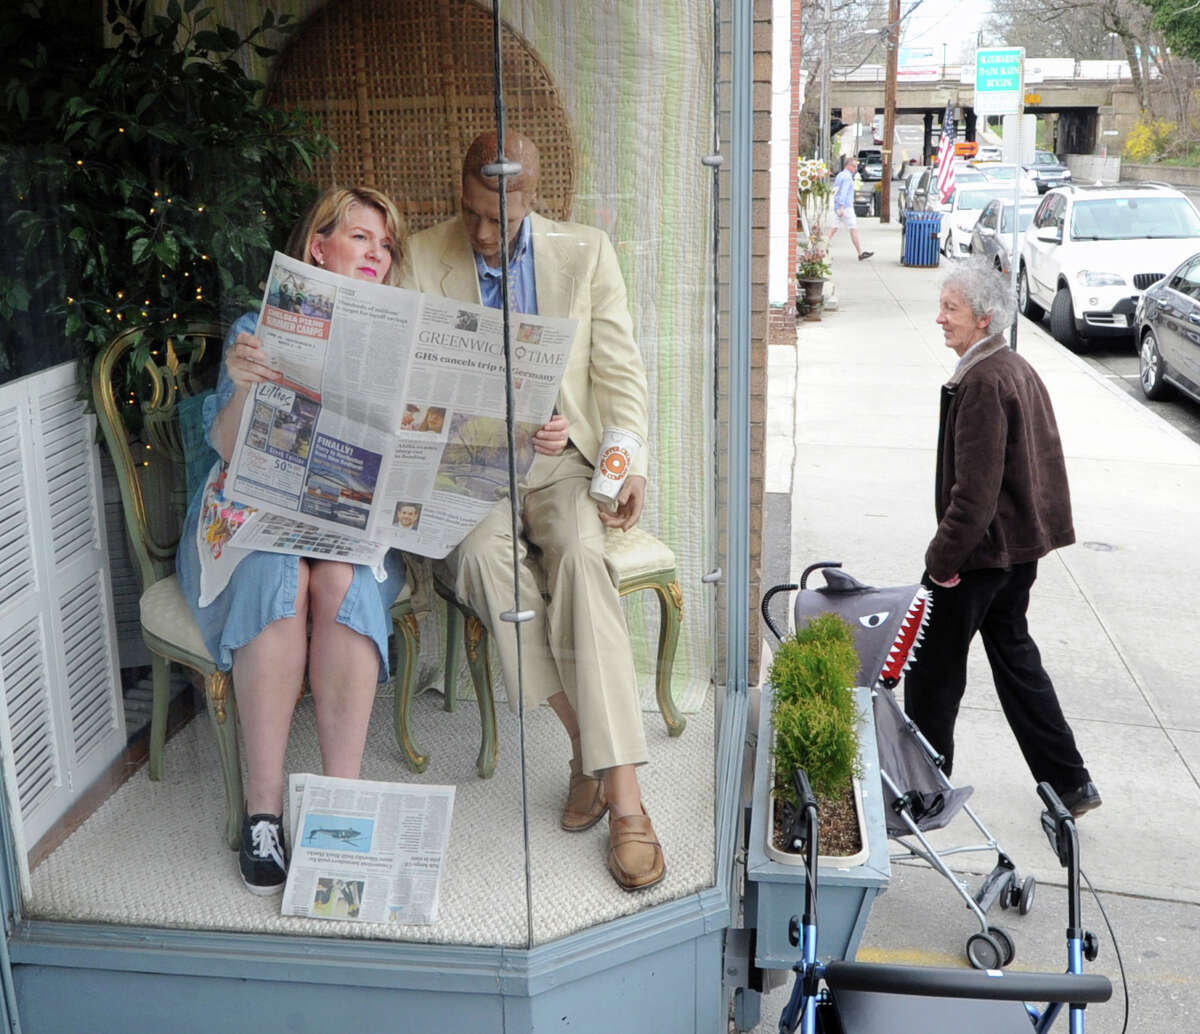 Liz Gustavson, left, reads a copy of the Greenwich Time as she plays a mannequin as part of the traditional April Fool's Day prank at the Rummage Room on Sound Beach Avenue in Old Greenwich, Conn., Friday, April 1, 2016. The Rummage Room, is a second-hand shop that is operated to raise money for various causes by the Women's Fellowship of the First Congregational Church in Old Greenwich of which Gustavson is a member. Gustavson said about the April Fool's Day prank